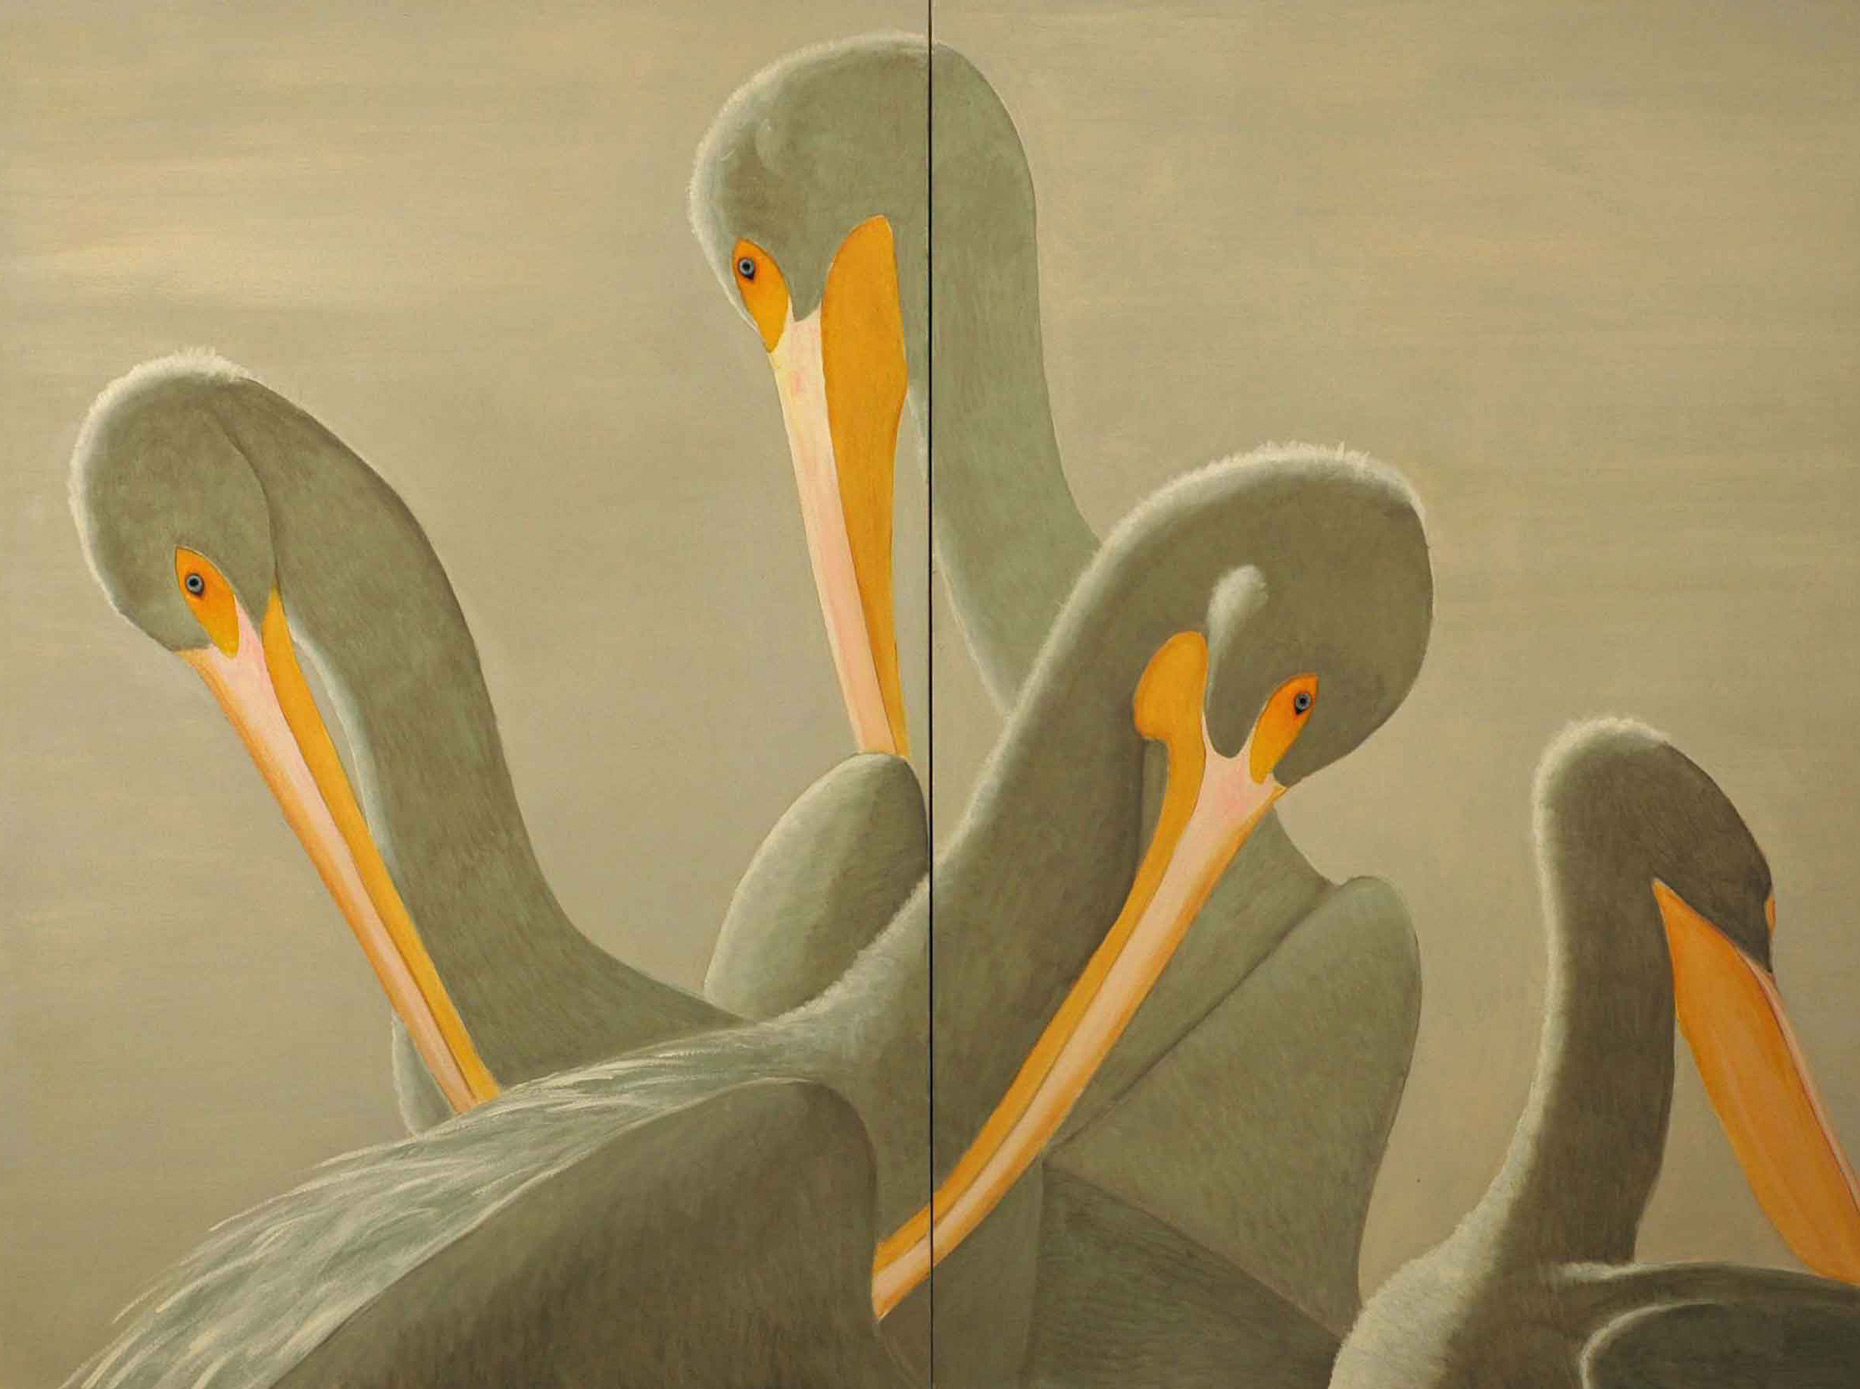 American White Pelicans 72x96 2011 diptych - fullx